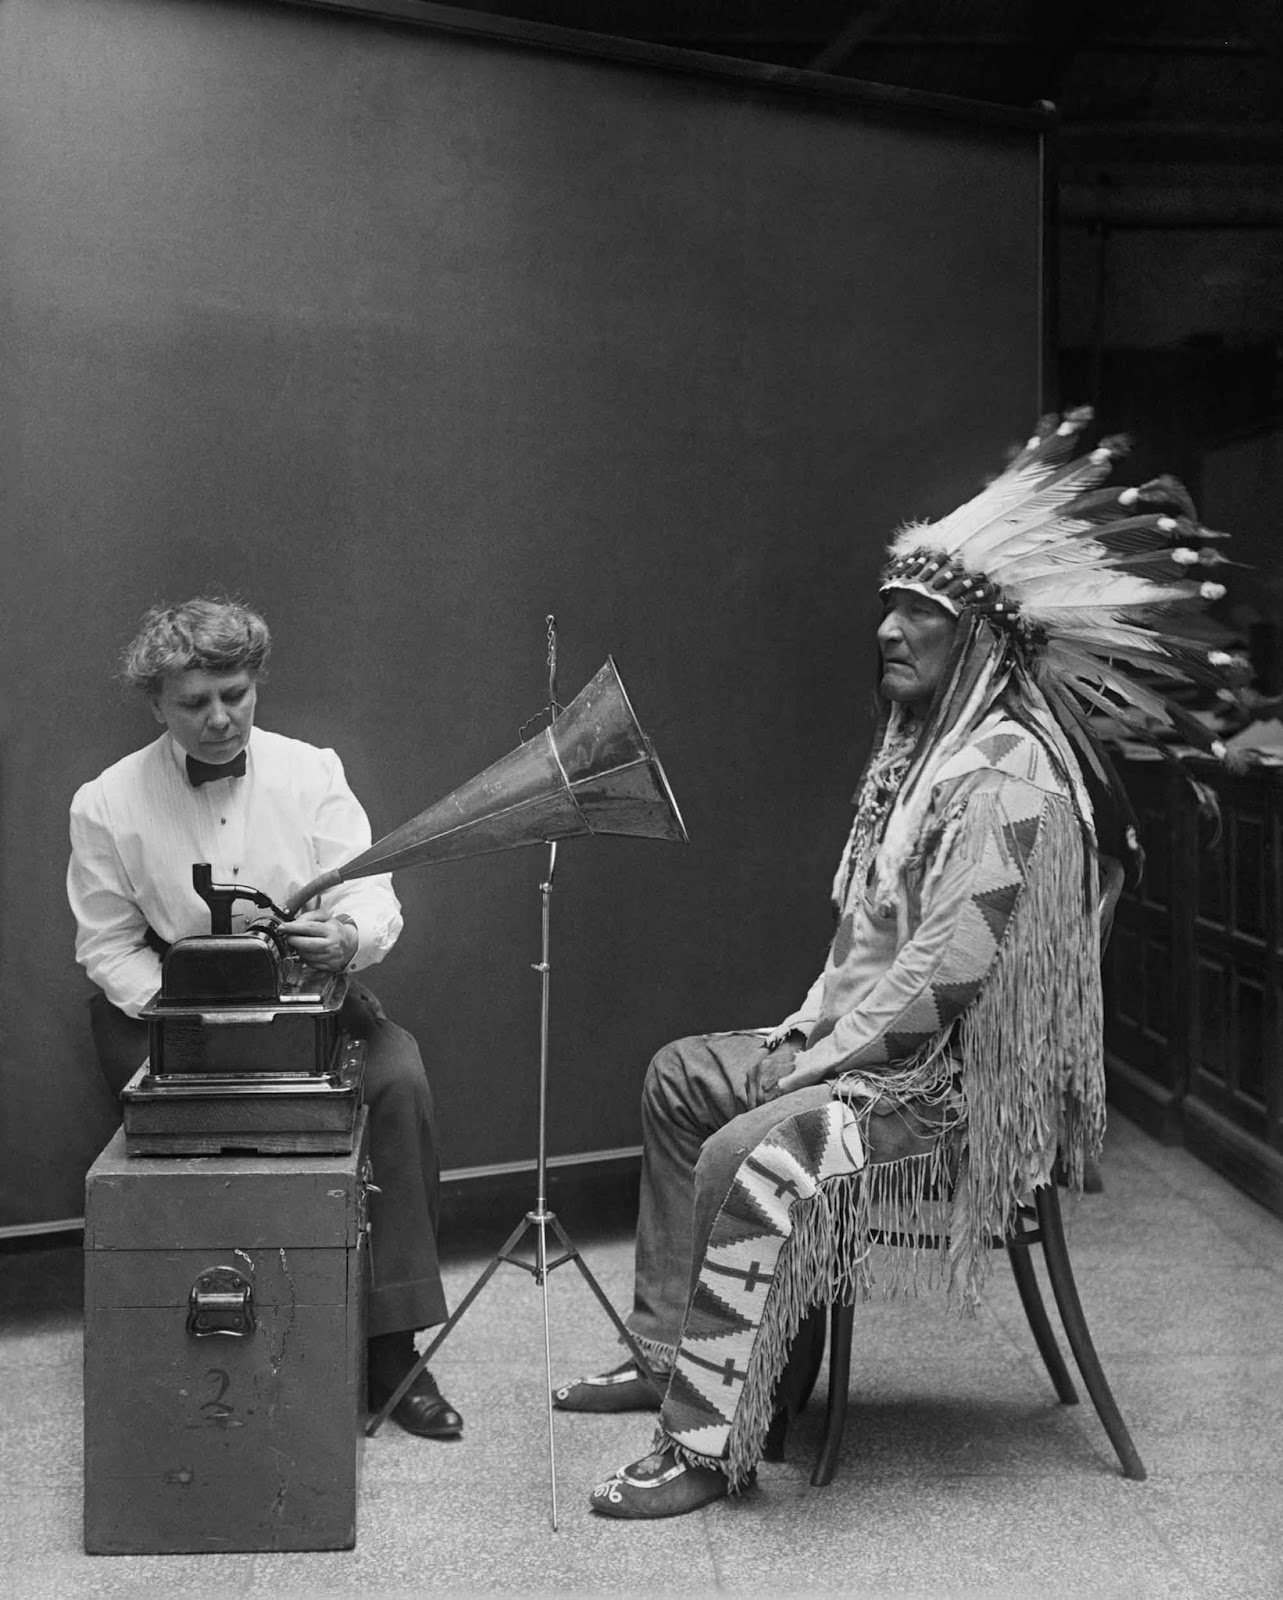 Mountain Chief of Piegan Blackfeet making phonographic record at Smithsonian. The interviewer is ethnologist Frances Densmore. 1916.